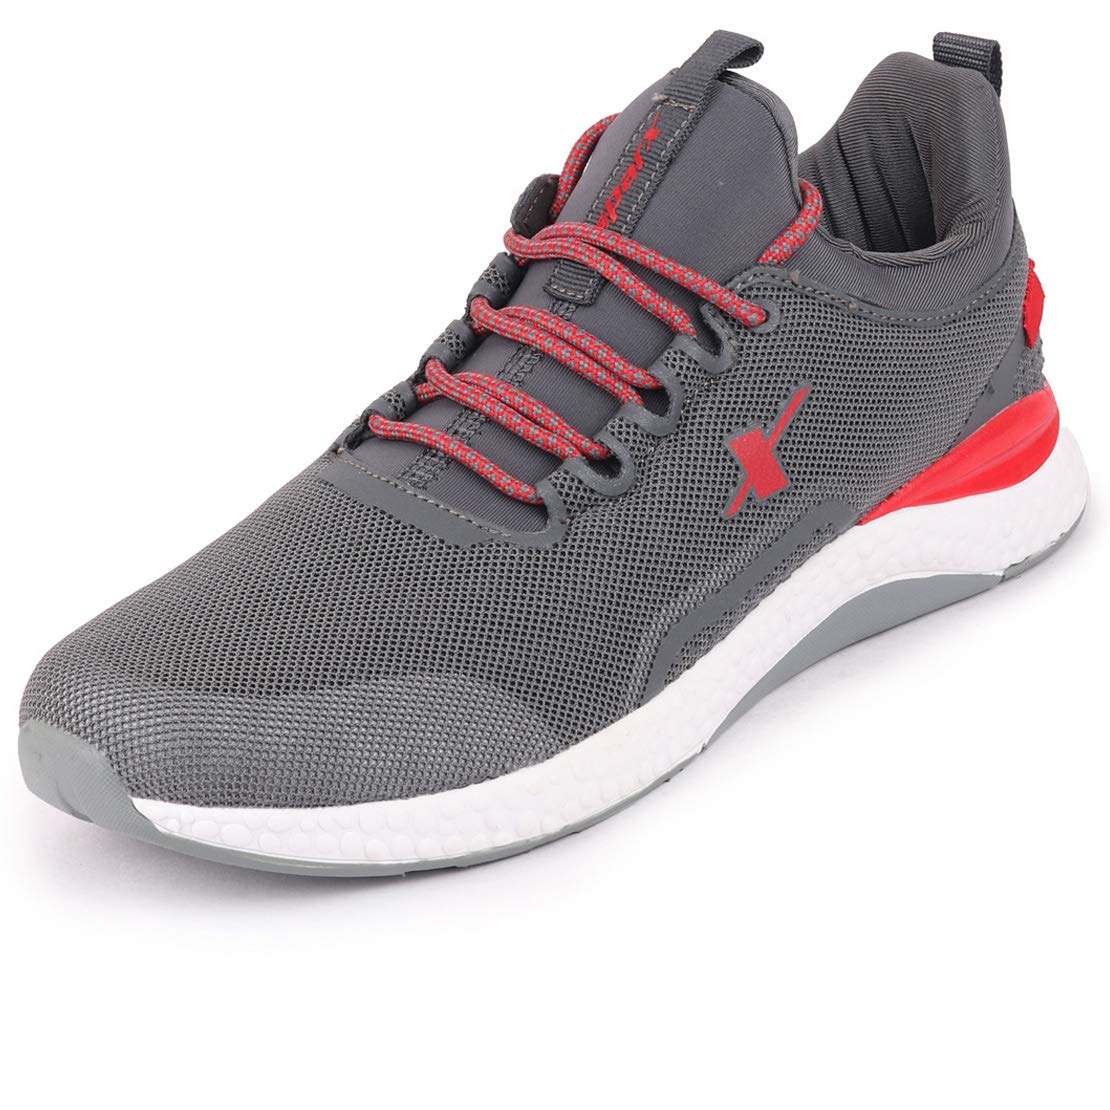 Sparx Men's Sports Running Shoes SM-444